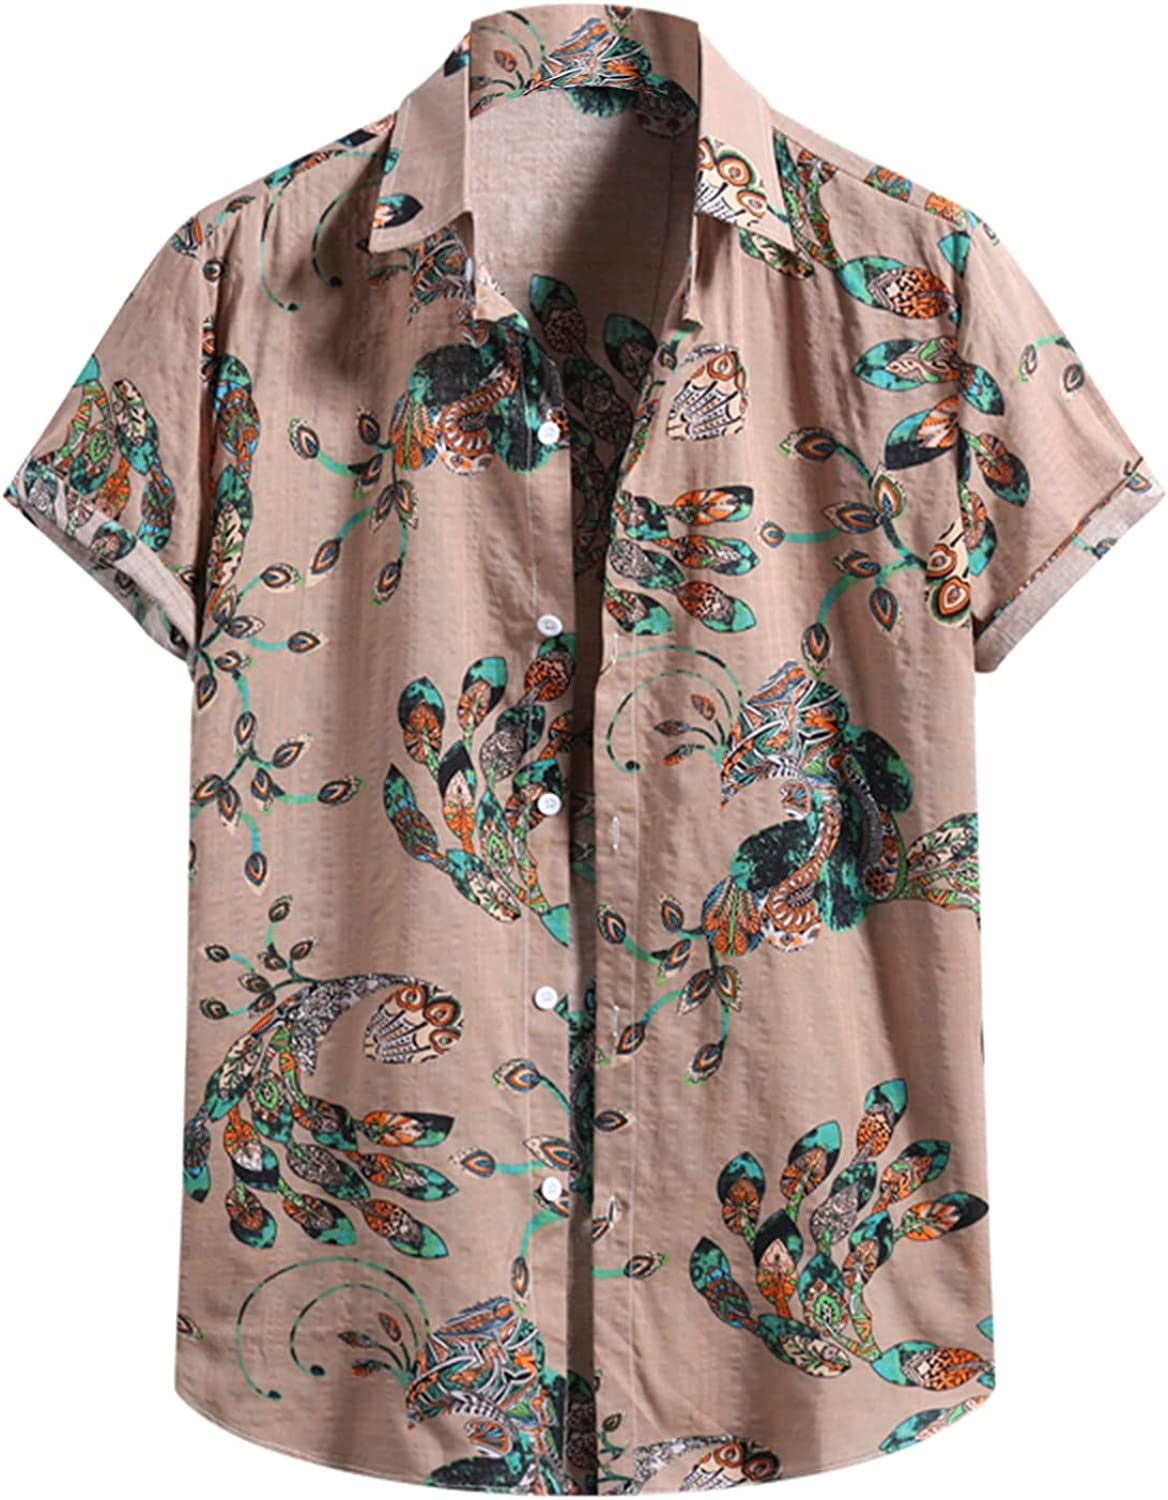 2021 Men's Short Sleeve Shirts Cotton Linen Printed Hawaiian Casual Button Down Flower Beach Party Holiday Blouses Tops